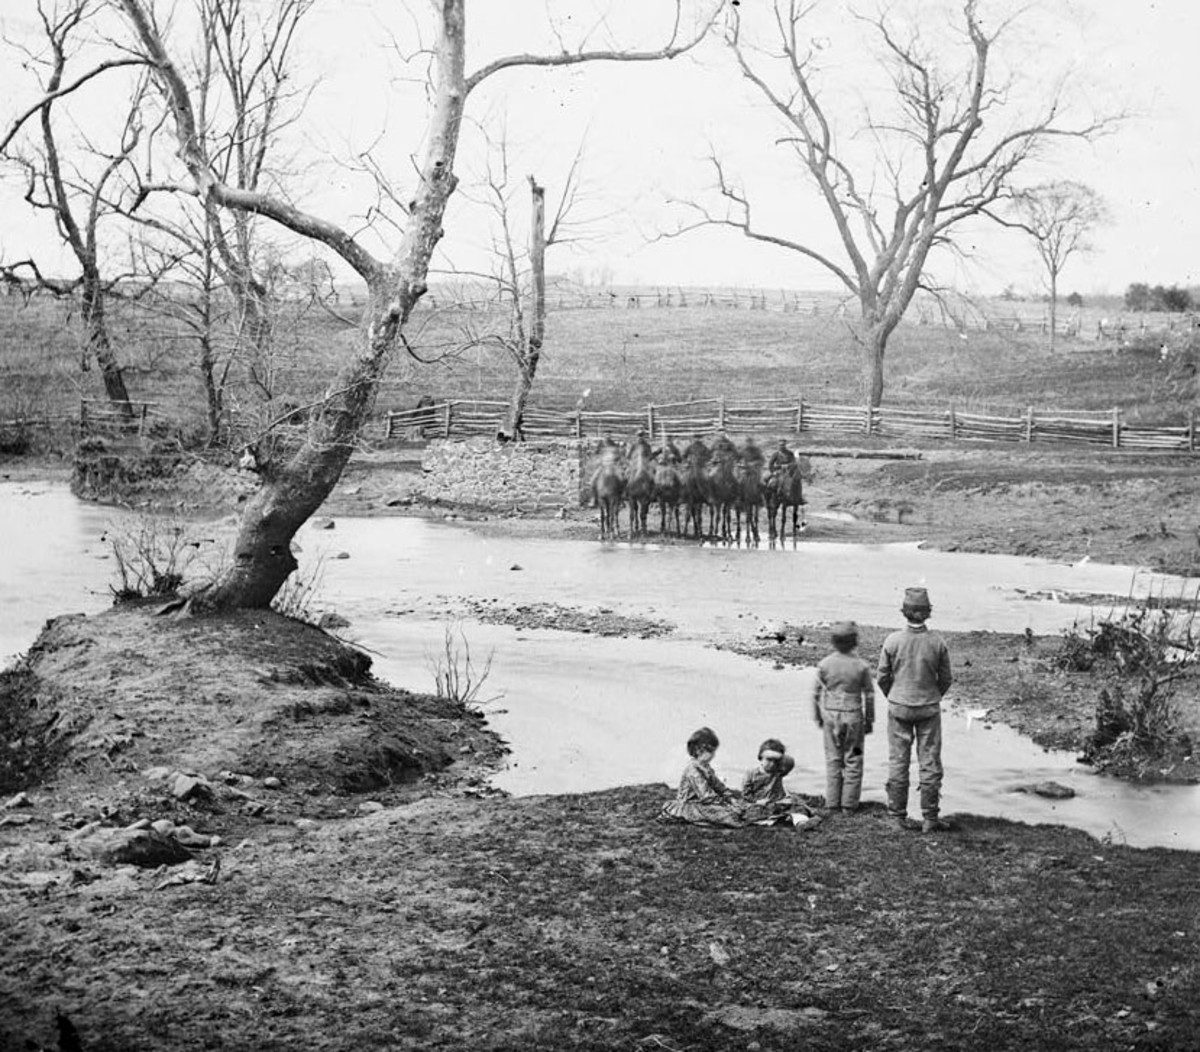 Union Cavalry of Sudley Spring Ford.